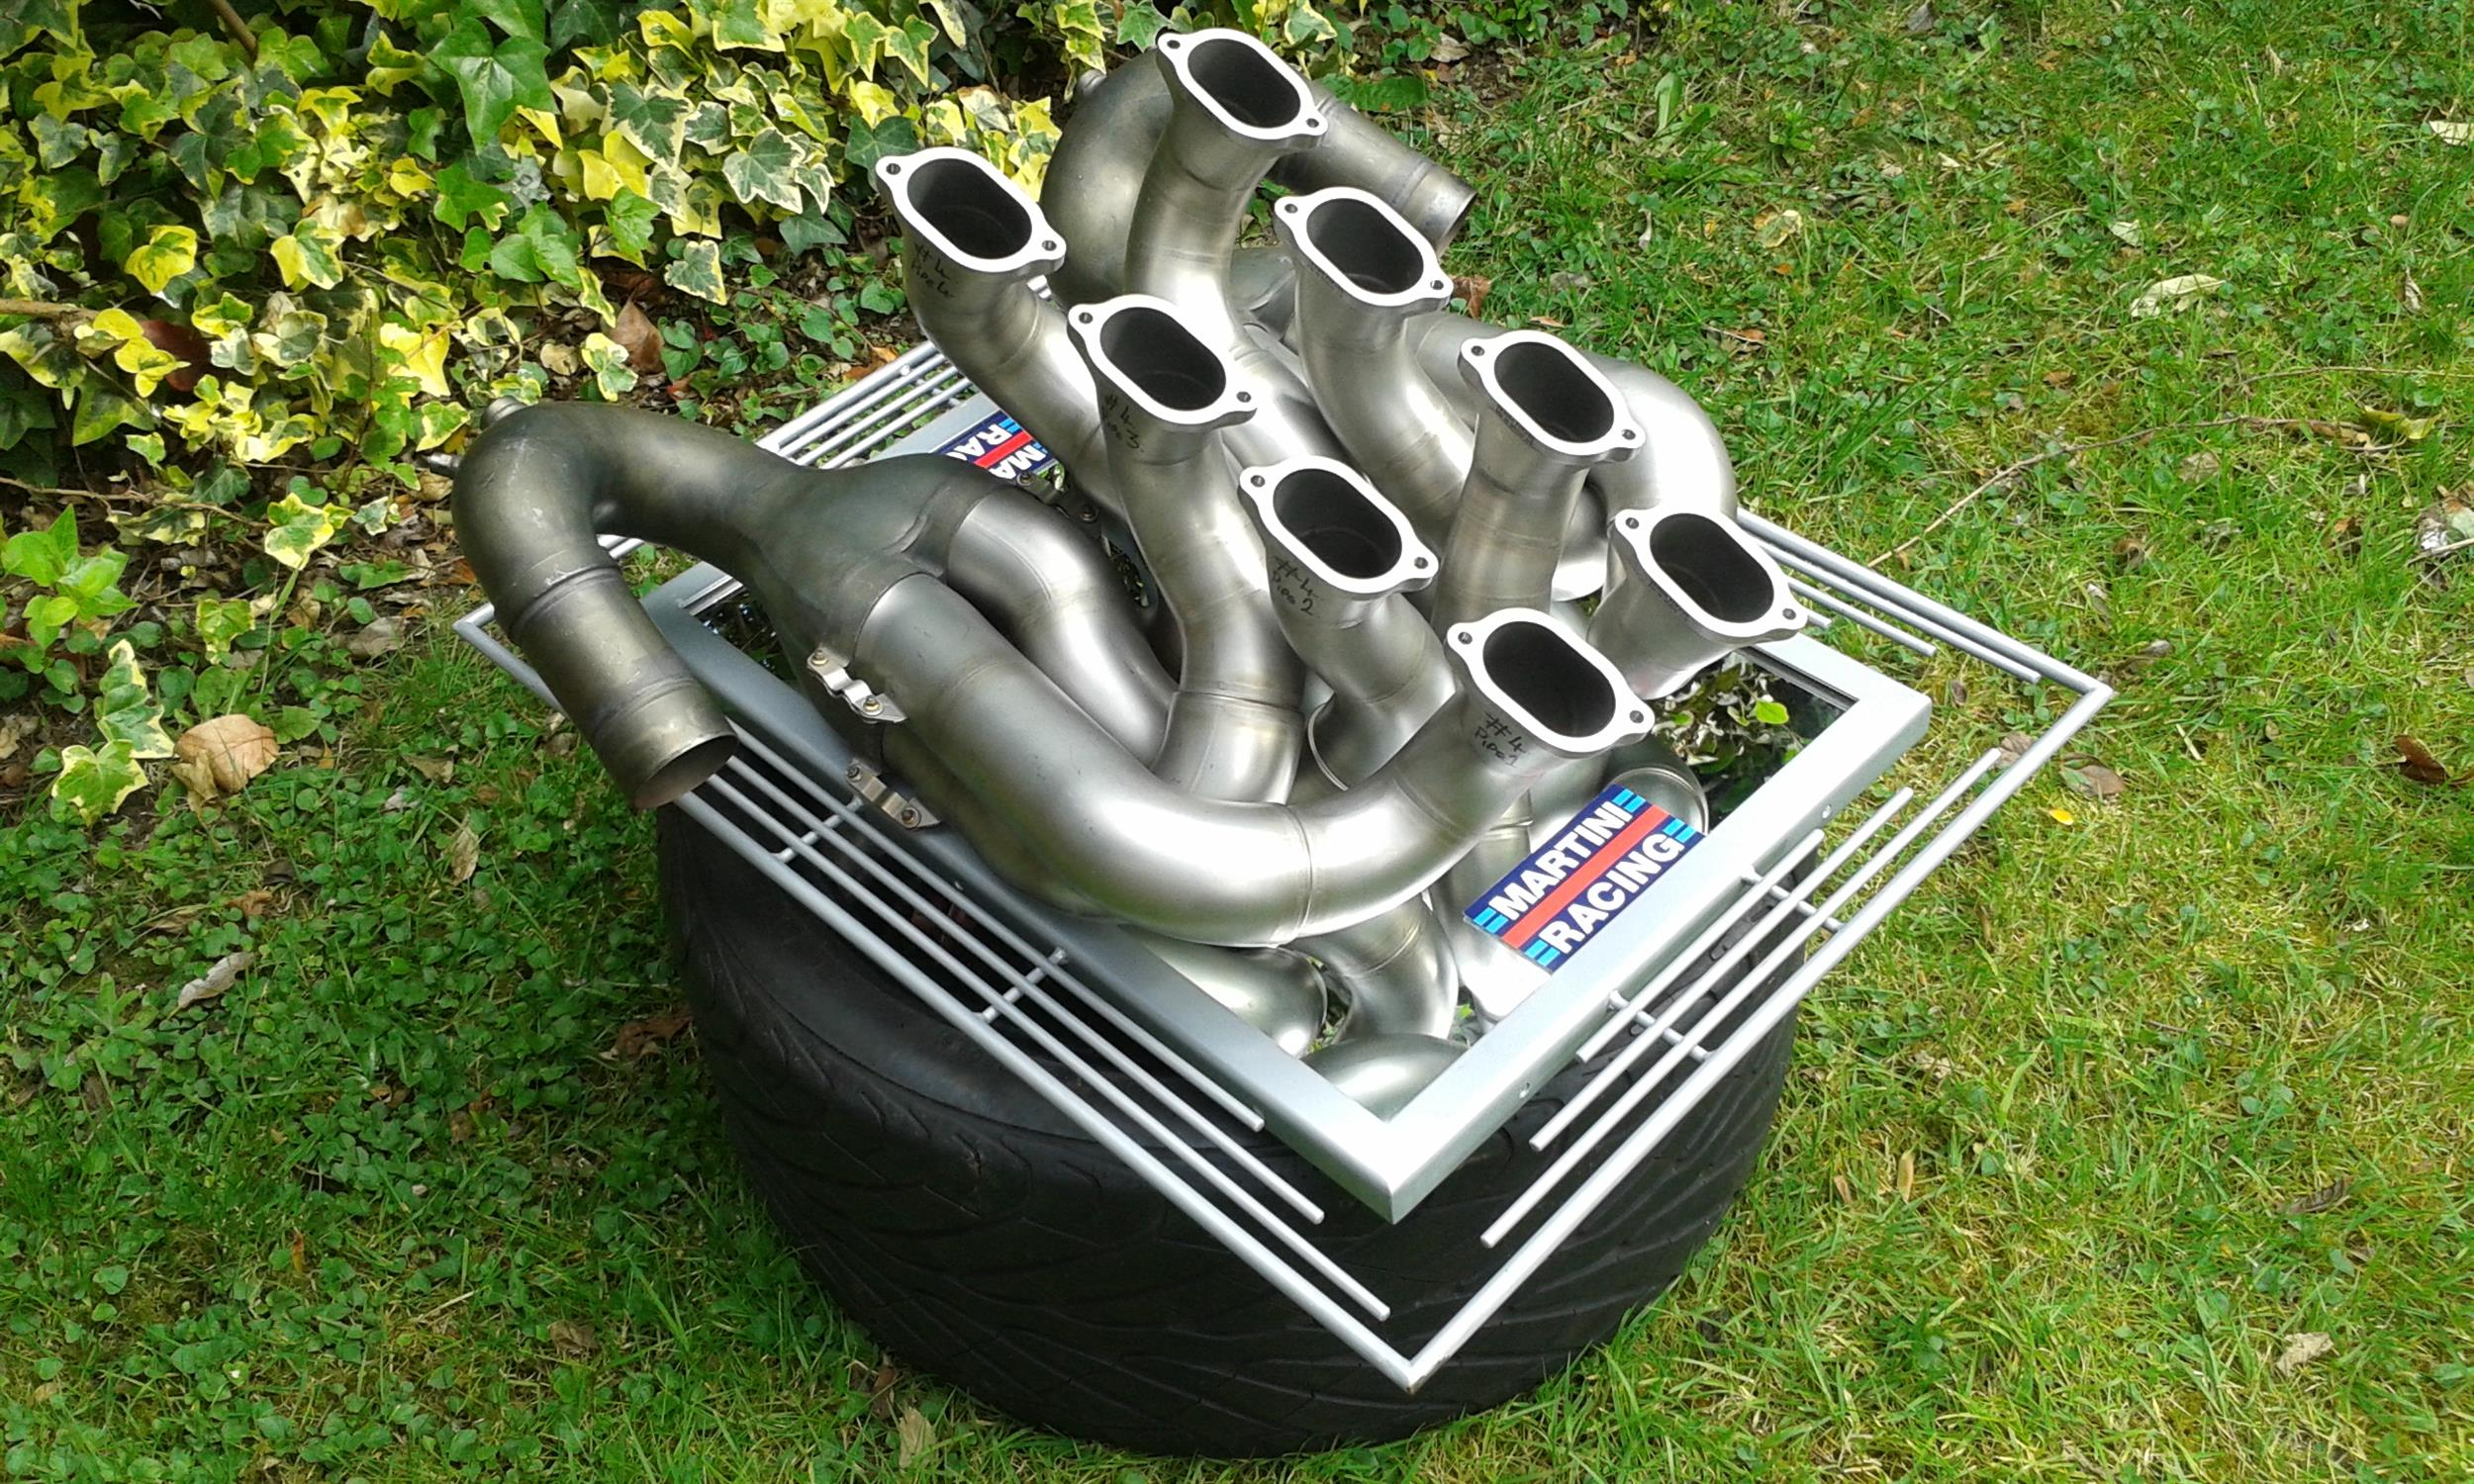 Williams Martini Racing - Pair of Race Used F1 Exhaust Pipes - Image 2 of 3